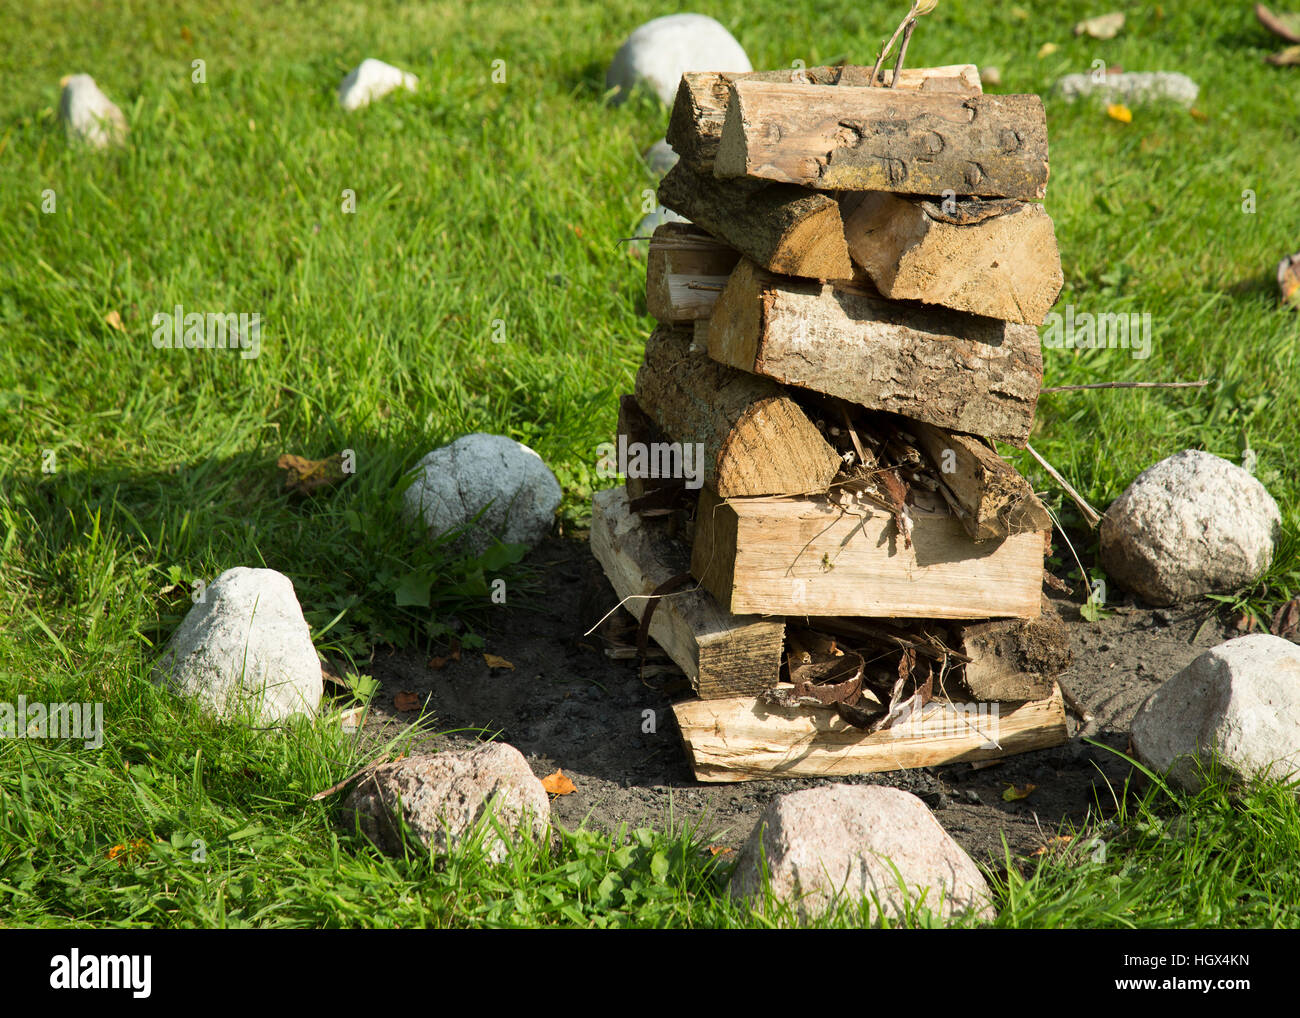 Built wood stack ready to ignite - Stock Image